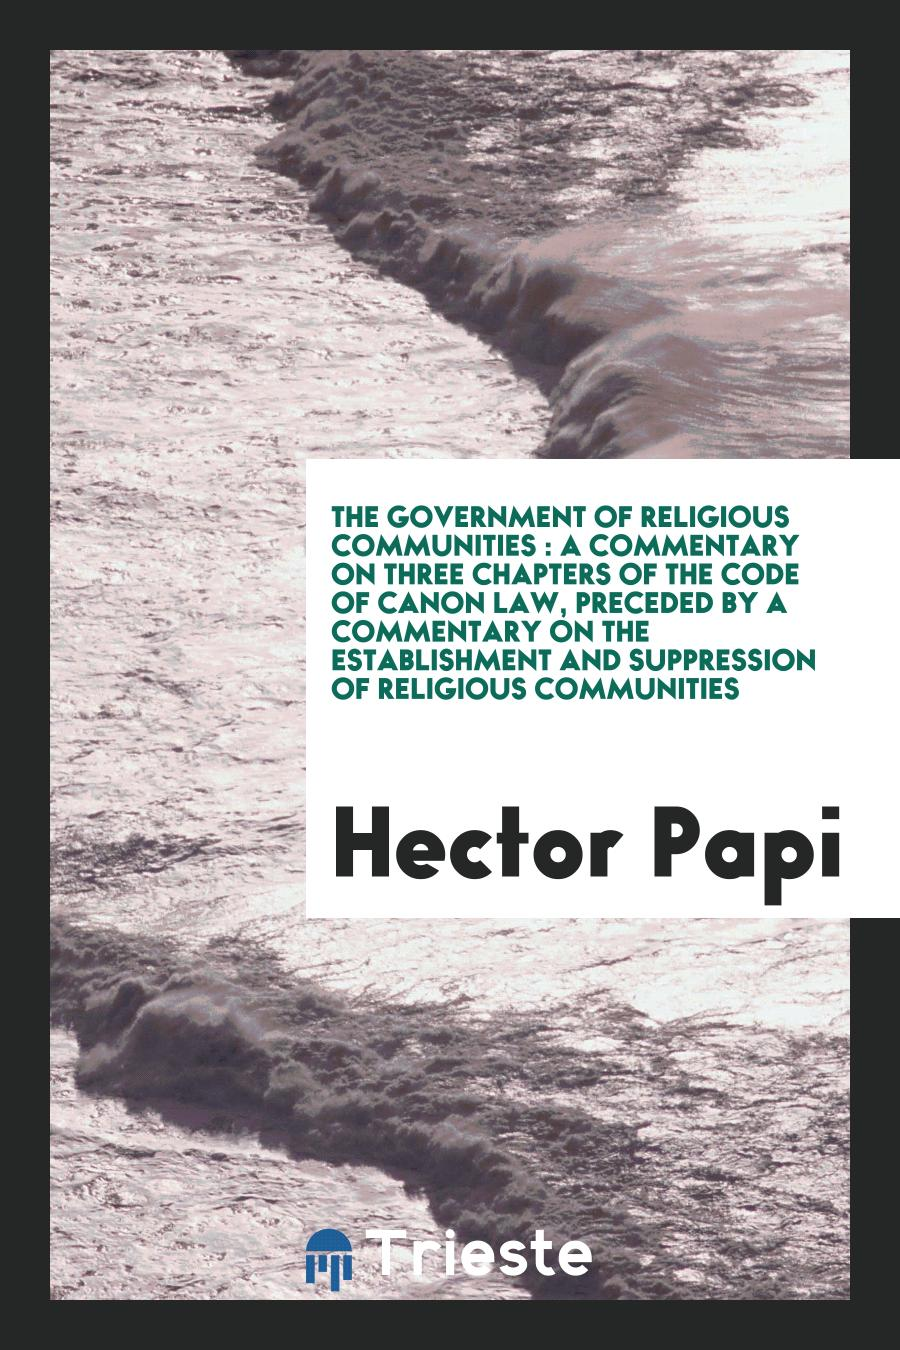 The Government of Religious Communities : A Commentary on Three Chapters of the Code of Canon Law, Preceded by a Commentary on the Establishment and Suppression of Religious Communities